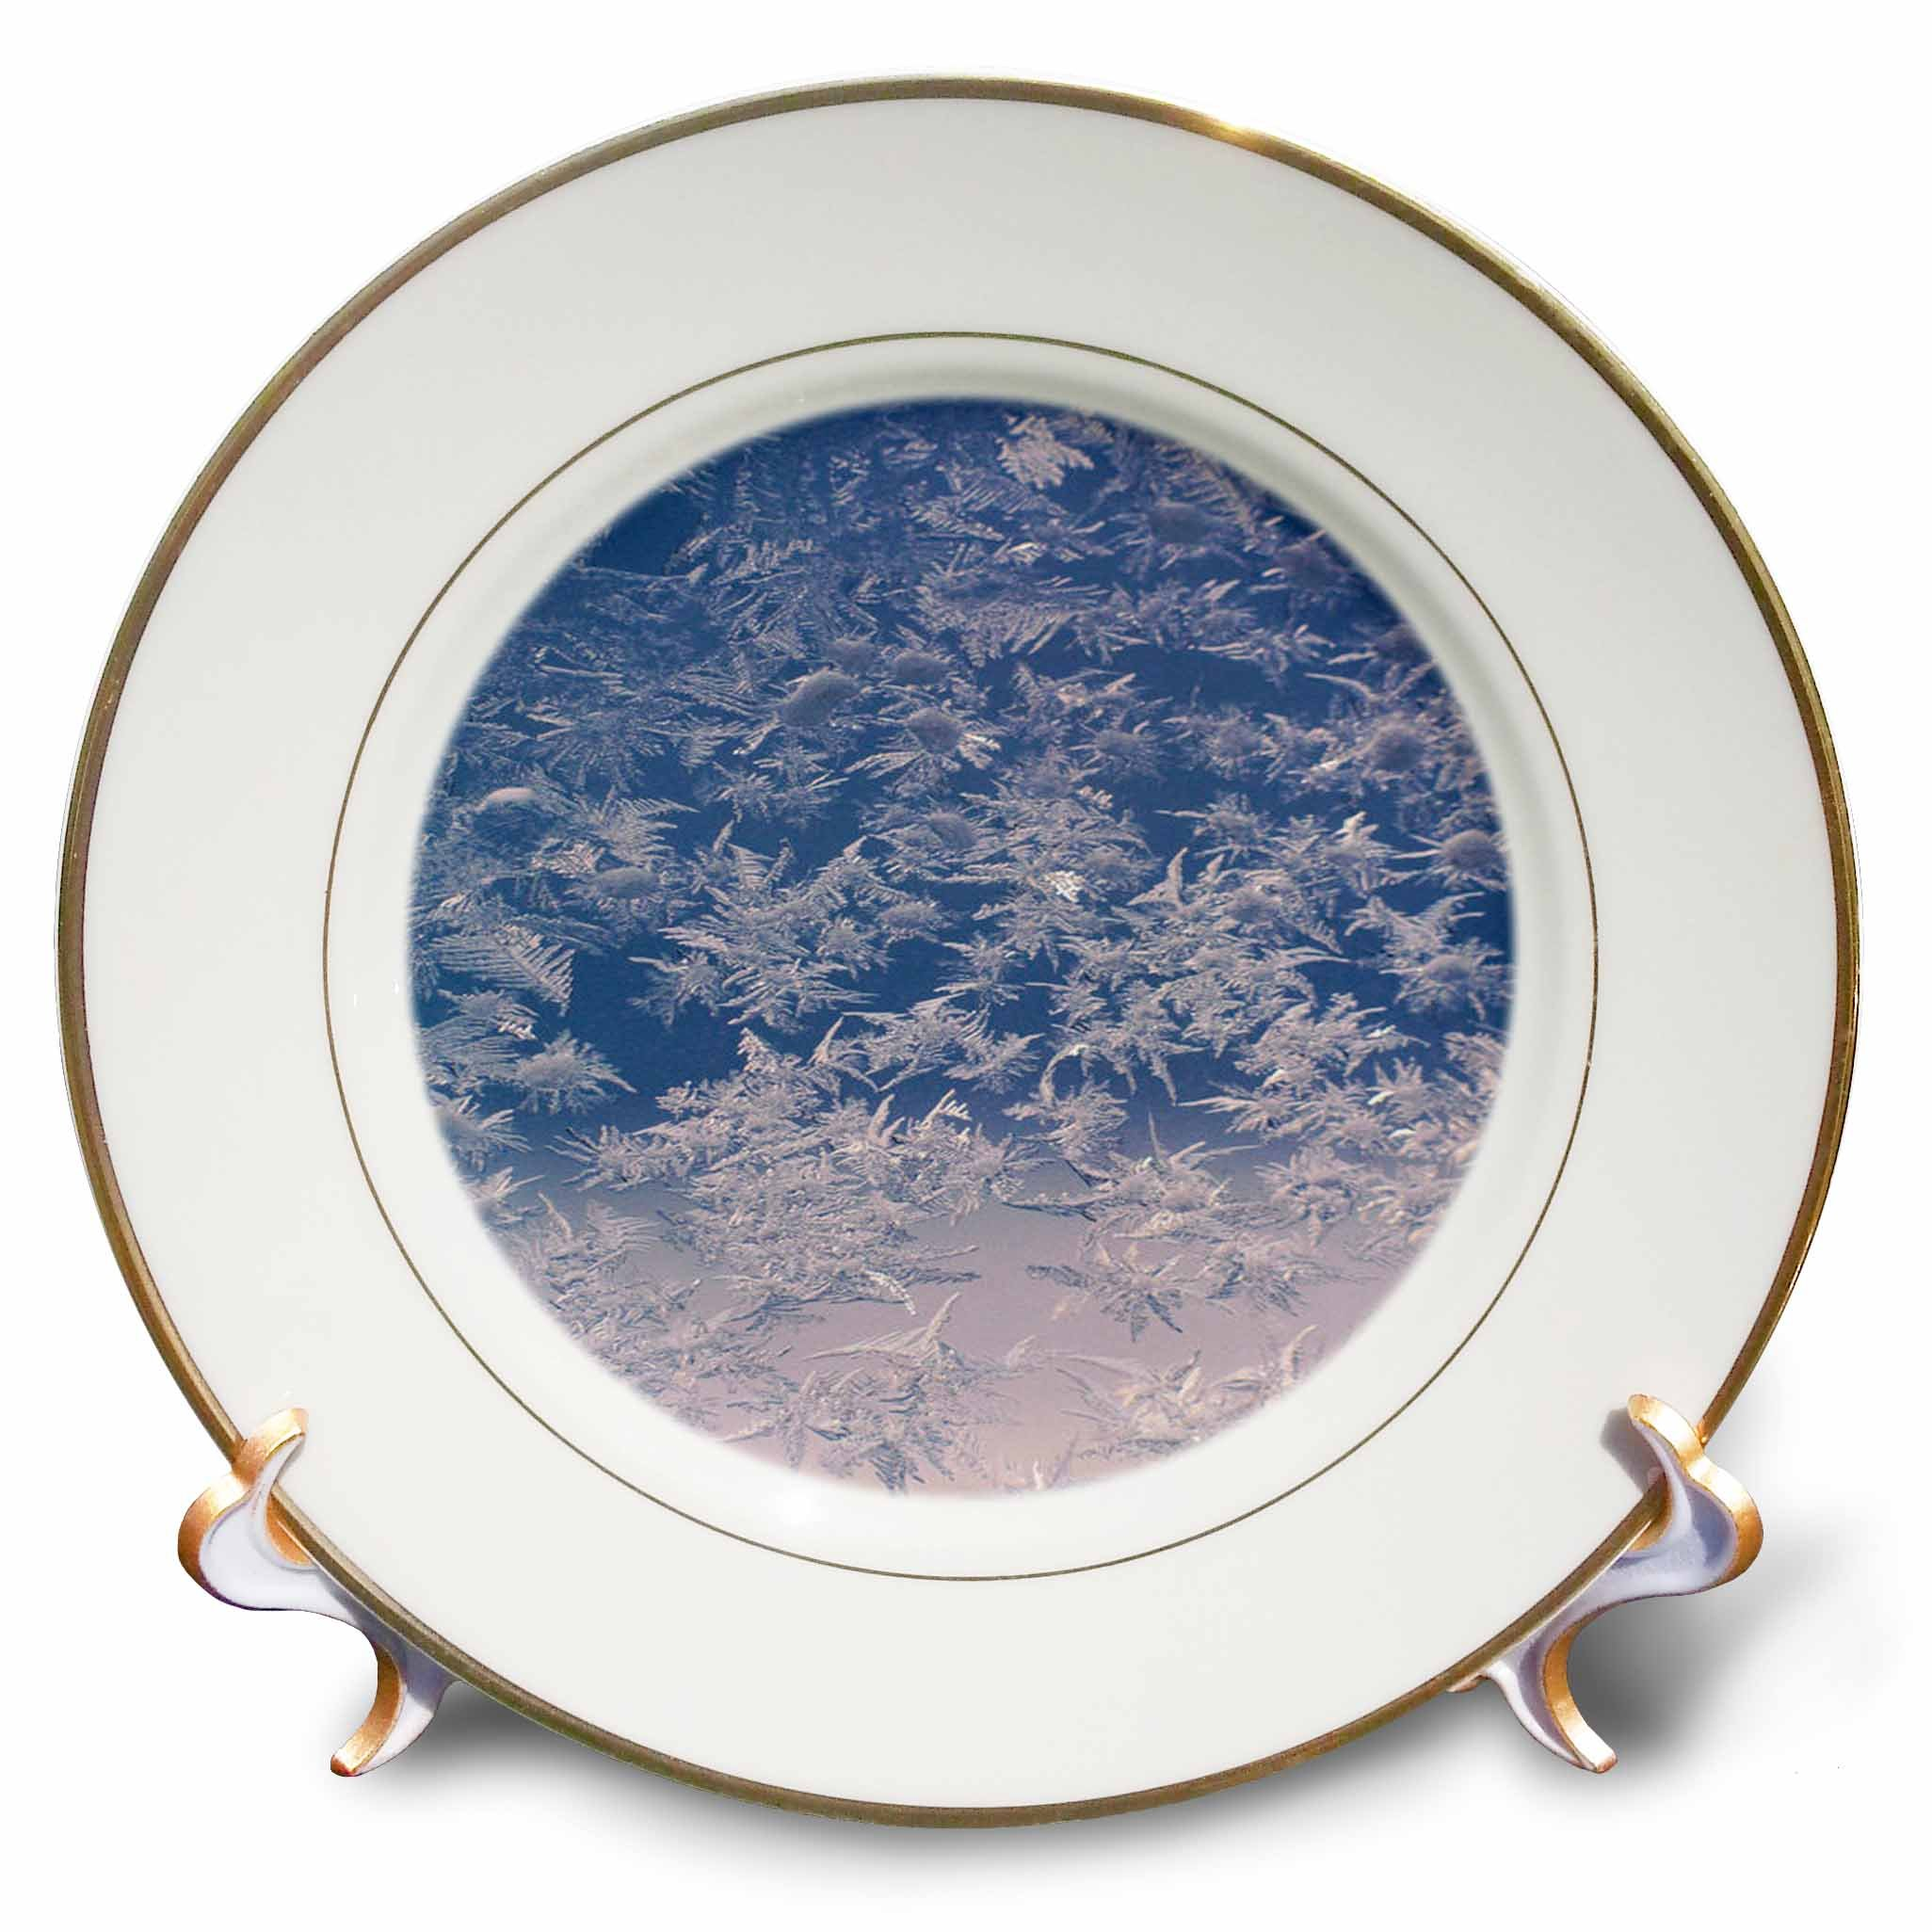 3dRose TDSwhite – Winter Seasonal Nature Photos - Window Snowflakes - 8 inch Porcelain Plate (cp_284946_1)